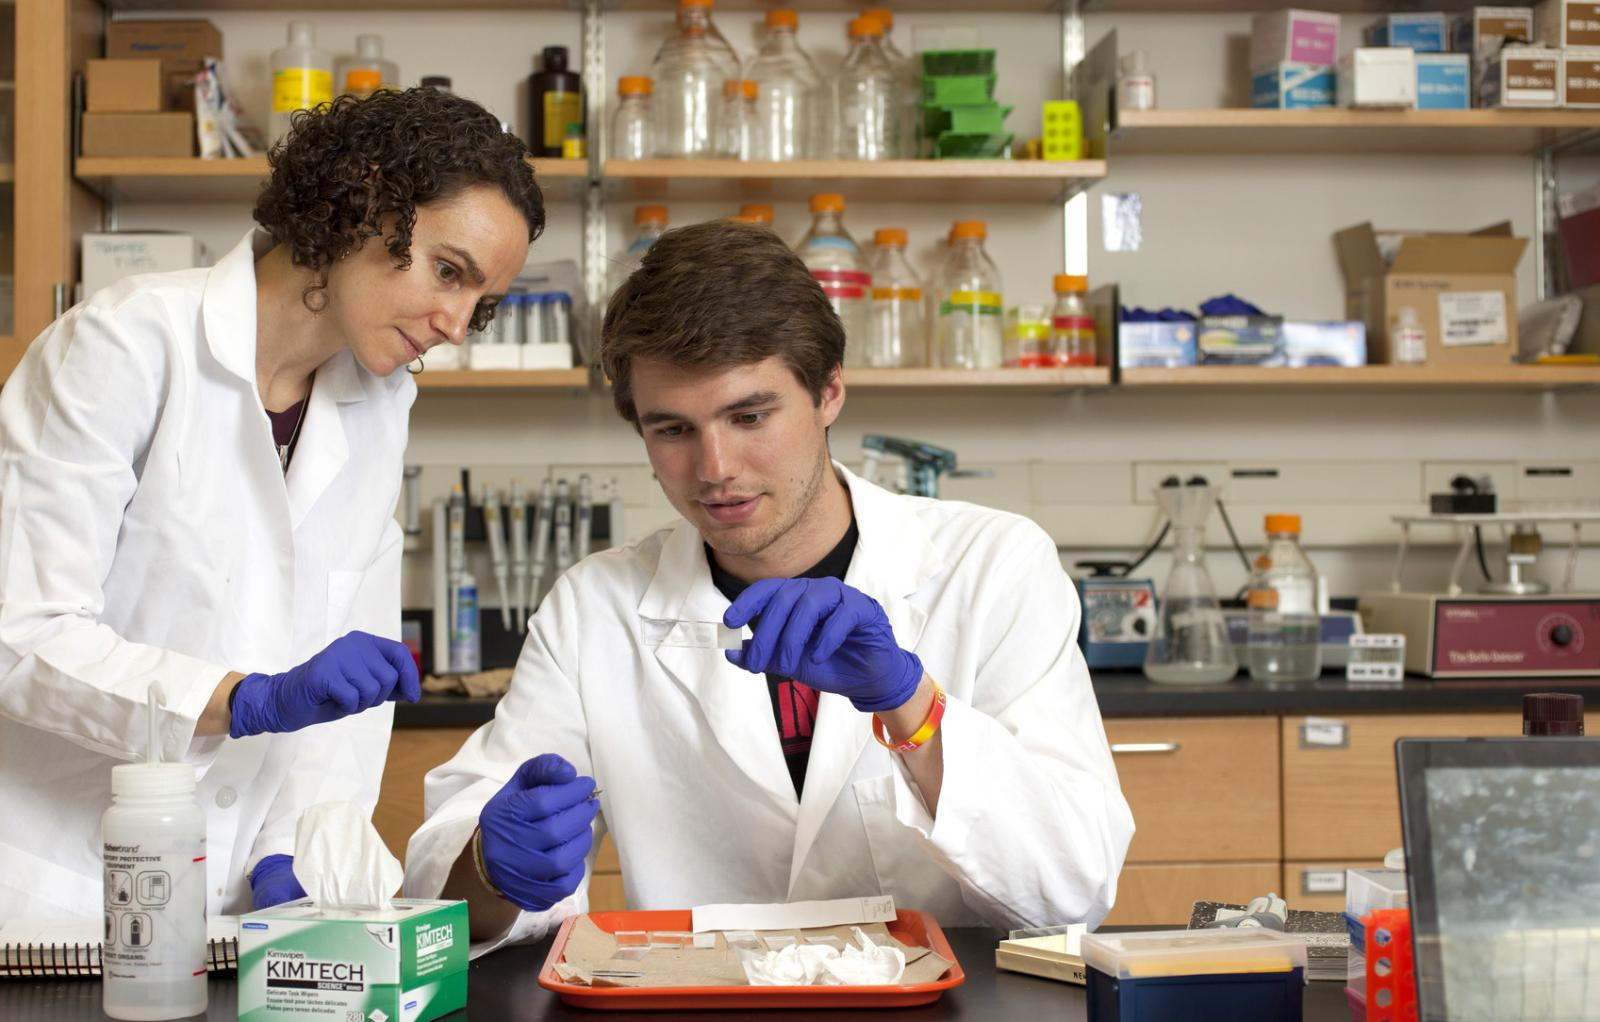 A professor and a student work in a lab.